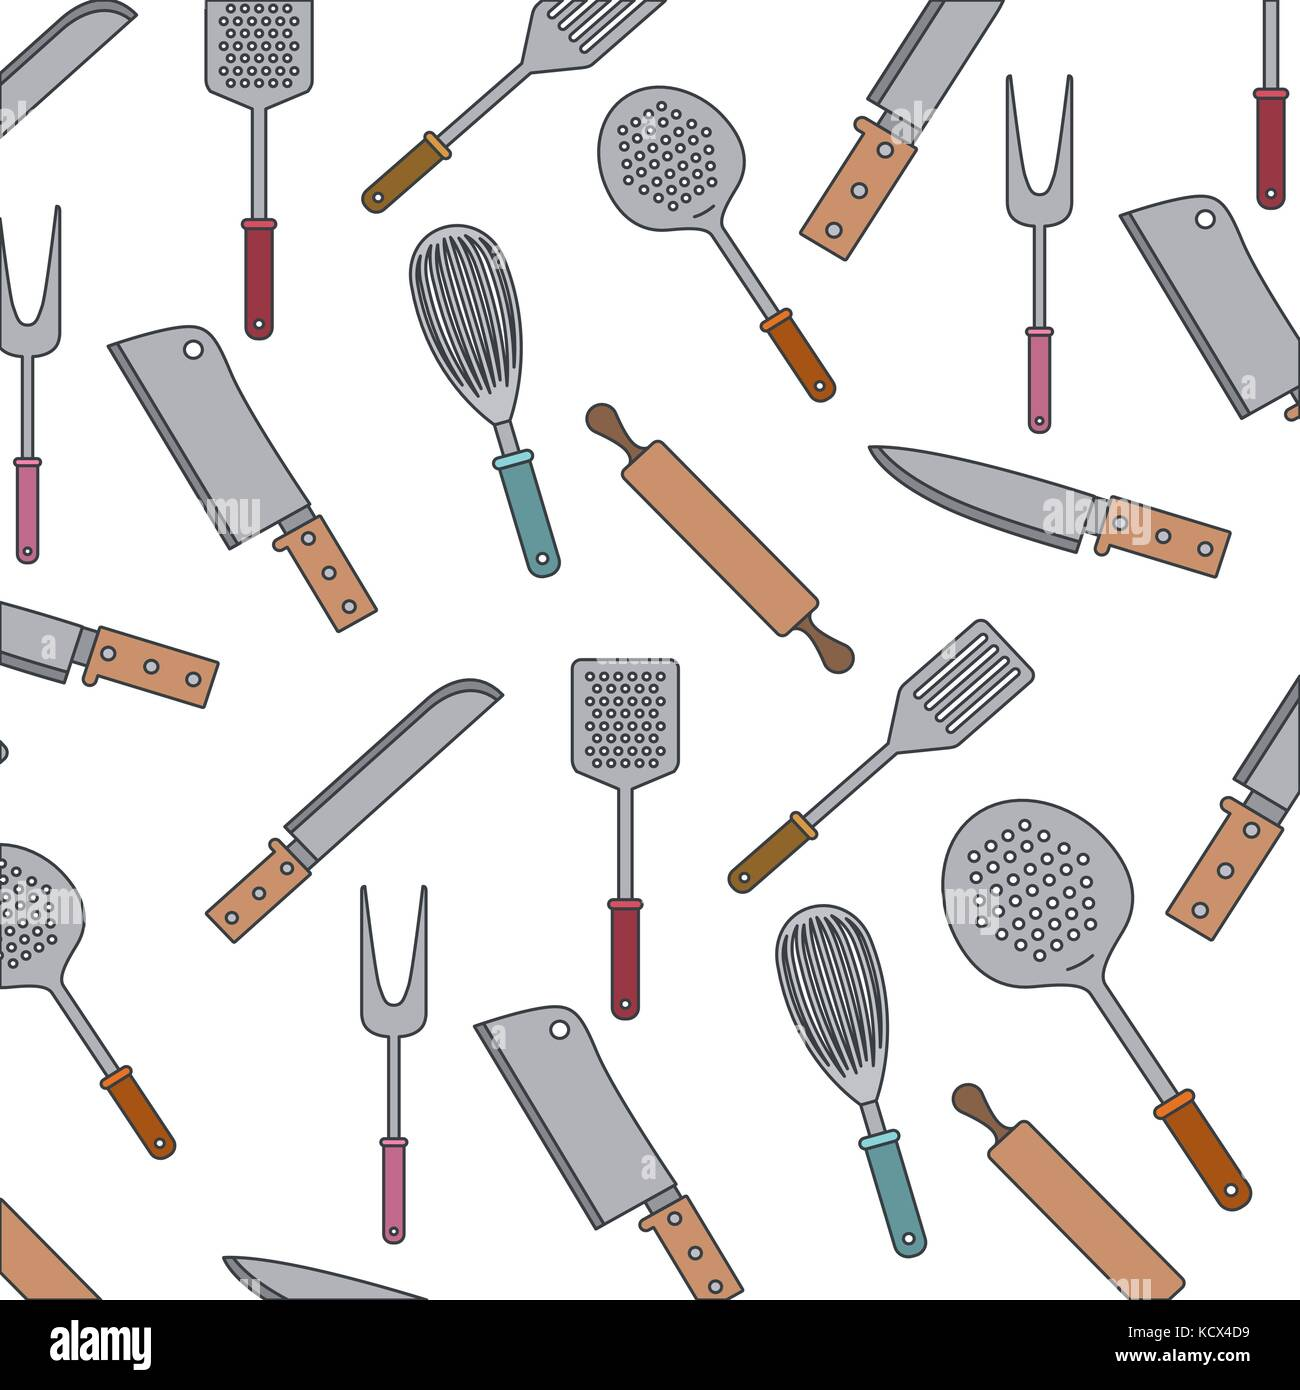 kitchen utensils colorful pattern background - Stock Vector